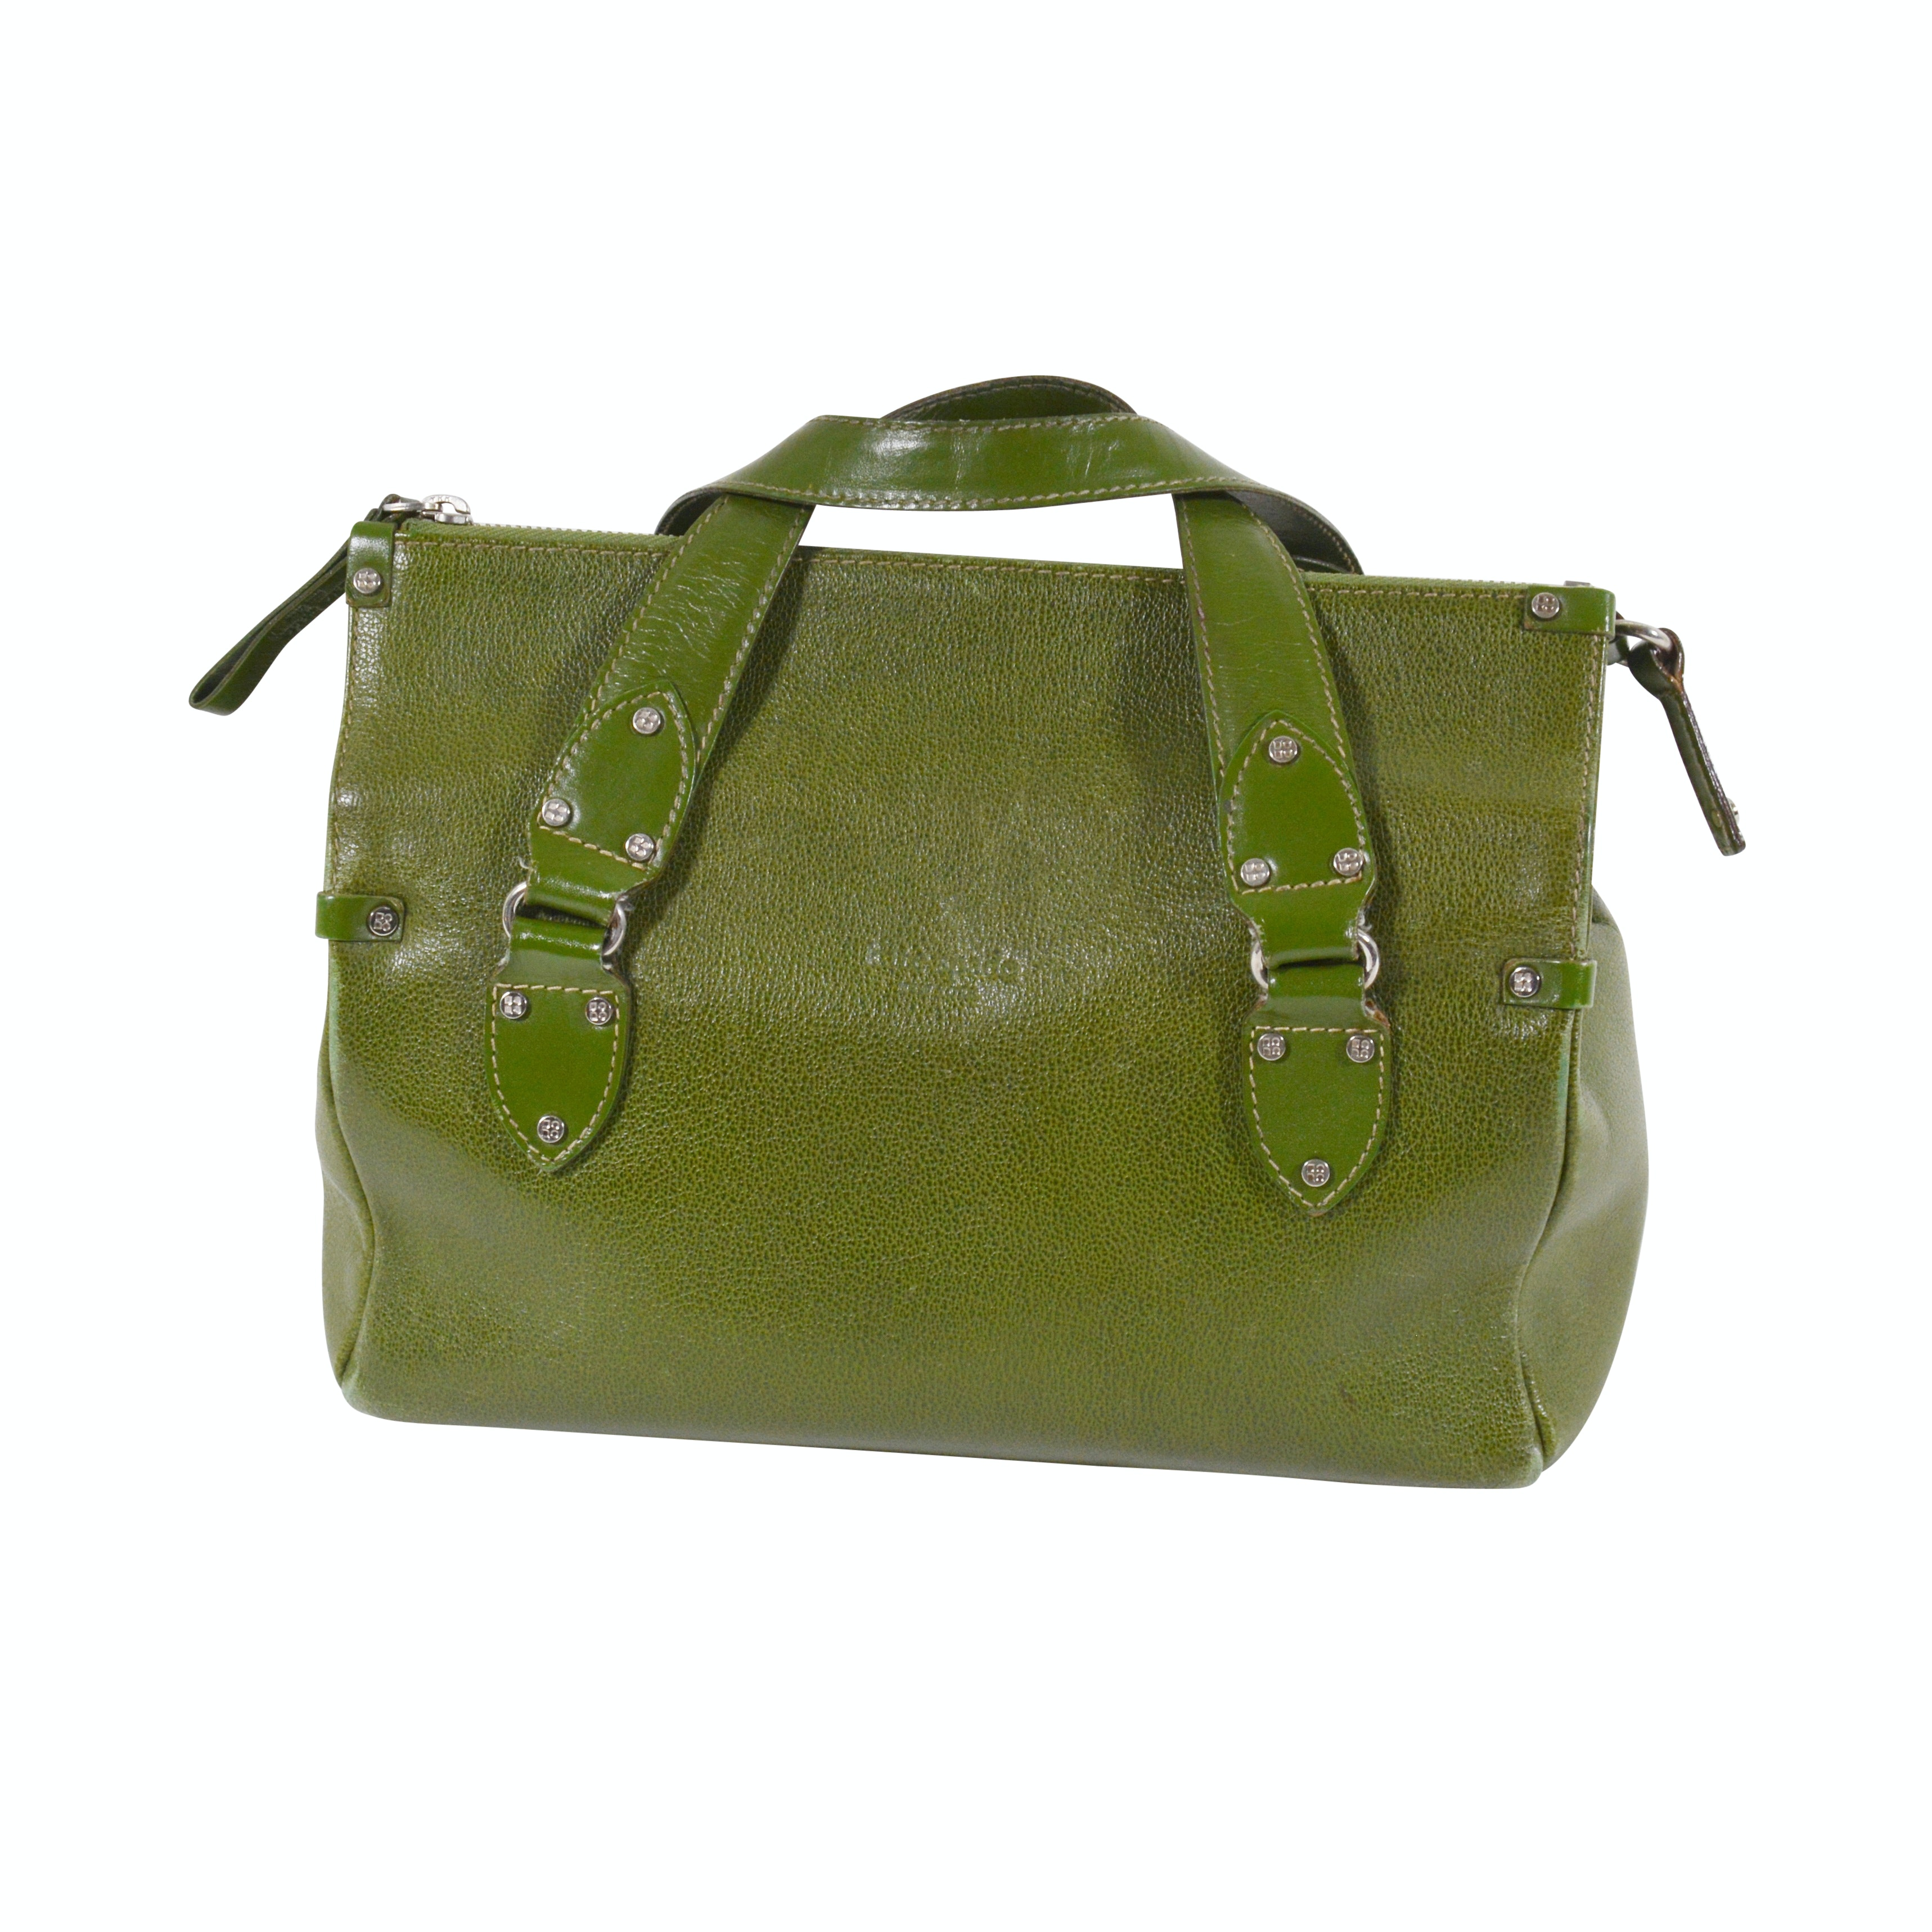 Kate Spade New York Green Embossed Leather Handbag